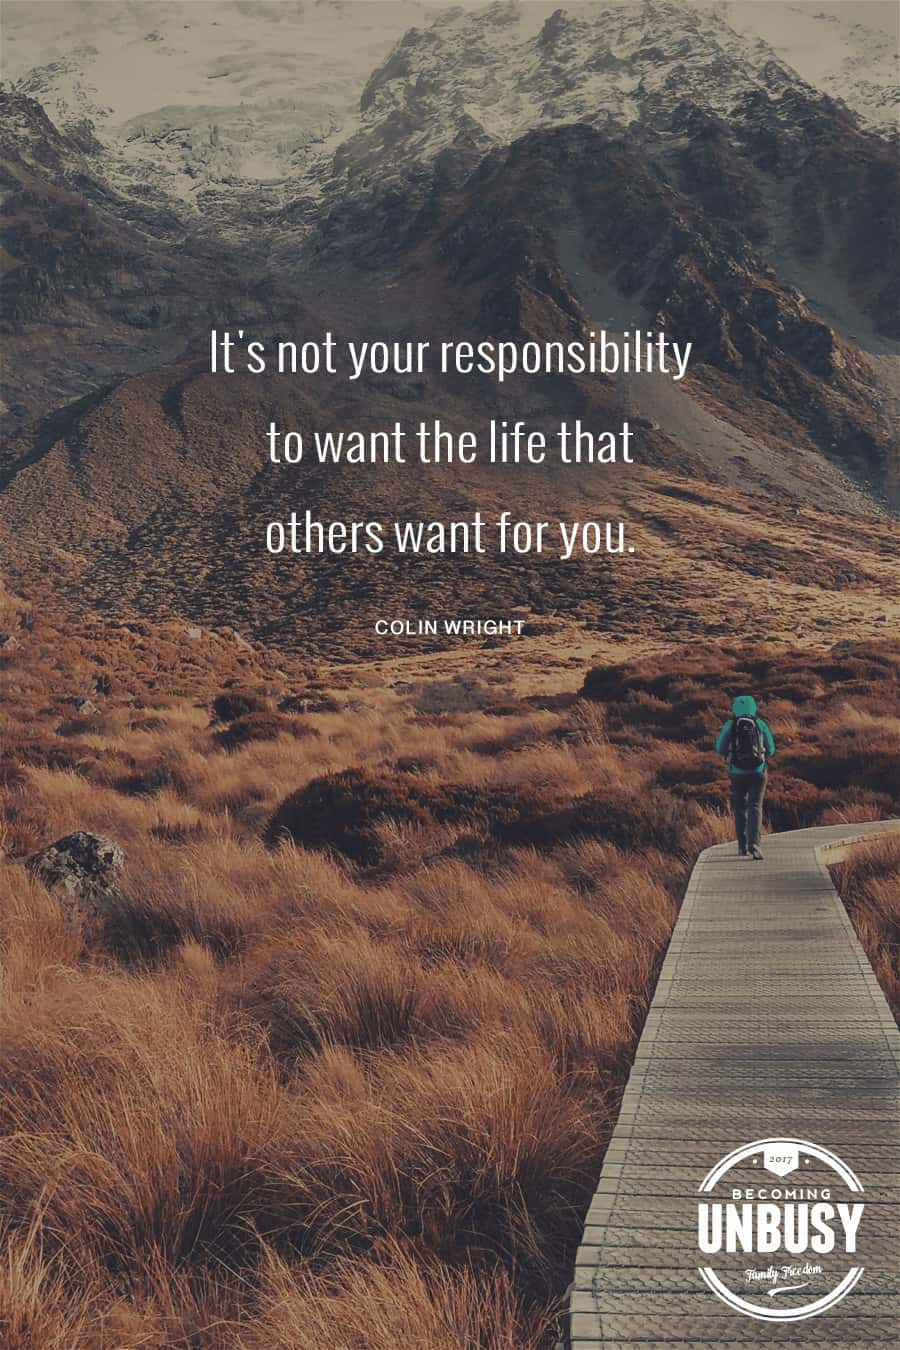 It's not your responsibility to want the life that others want for you.